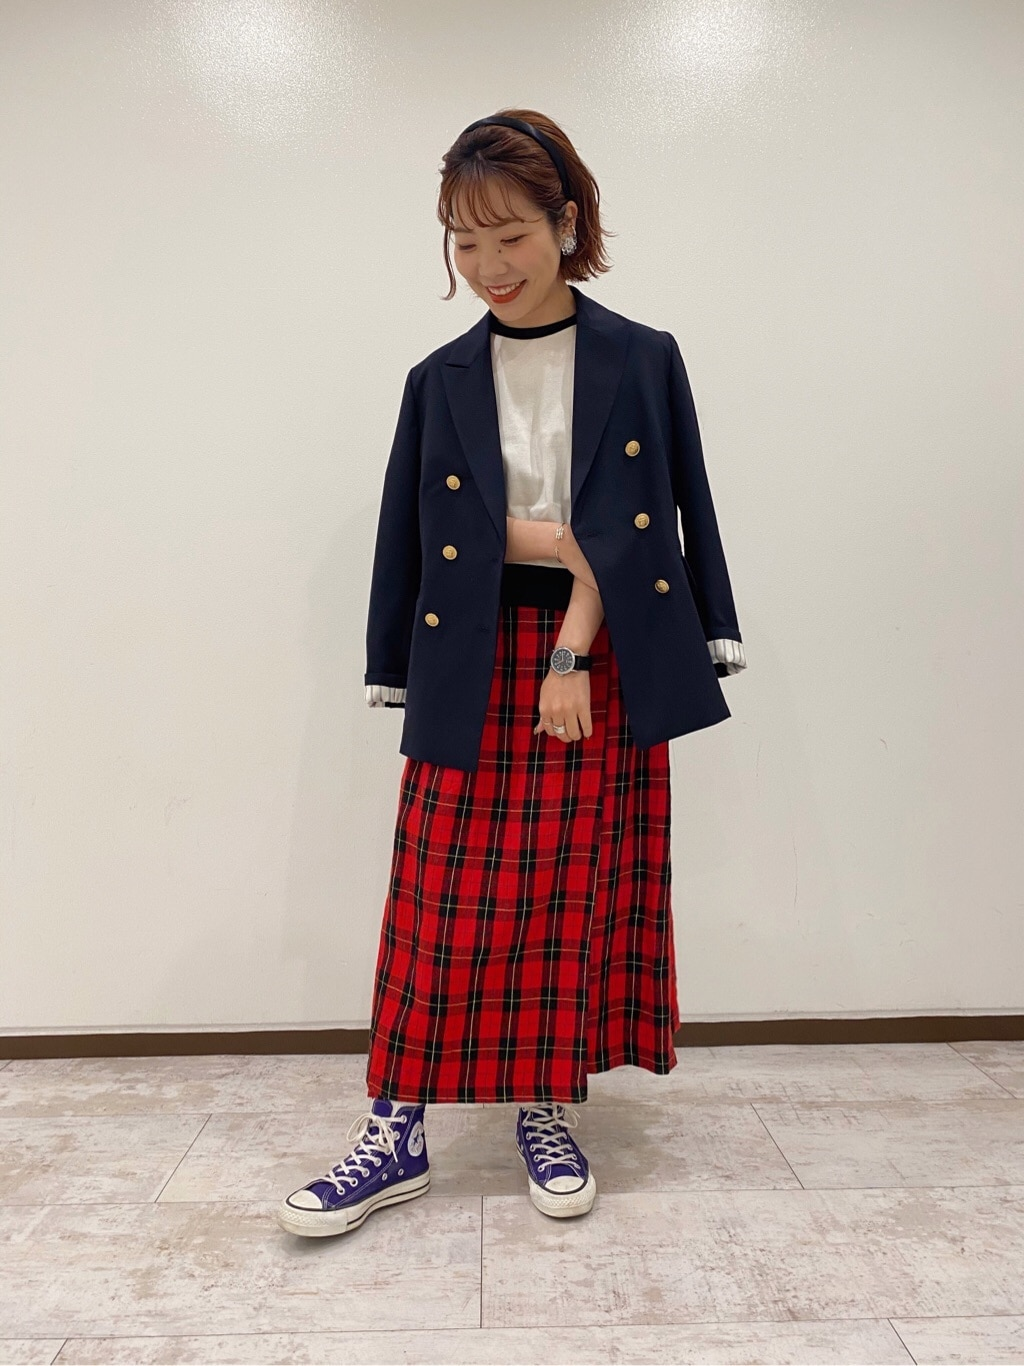 Dot and Stripes CHILD WOMAN 新宿ミロード 身長:153cm 2020.04.20